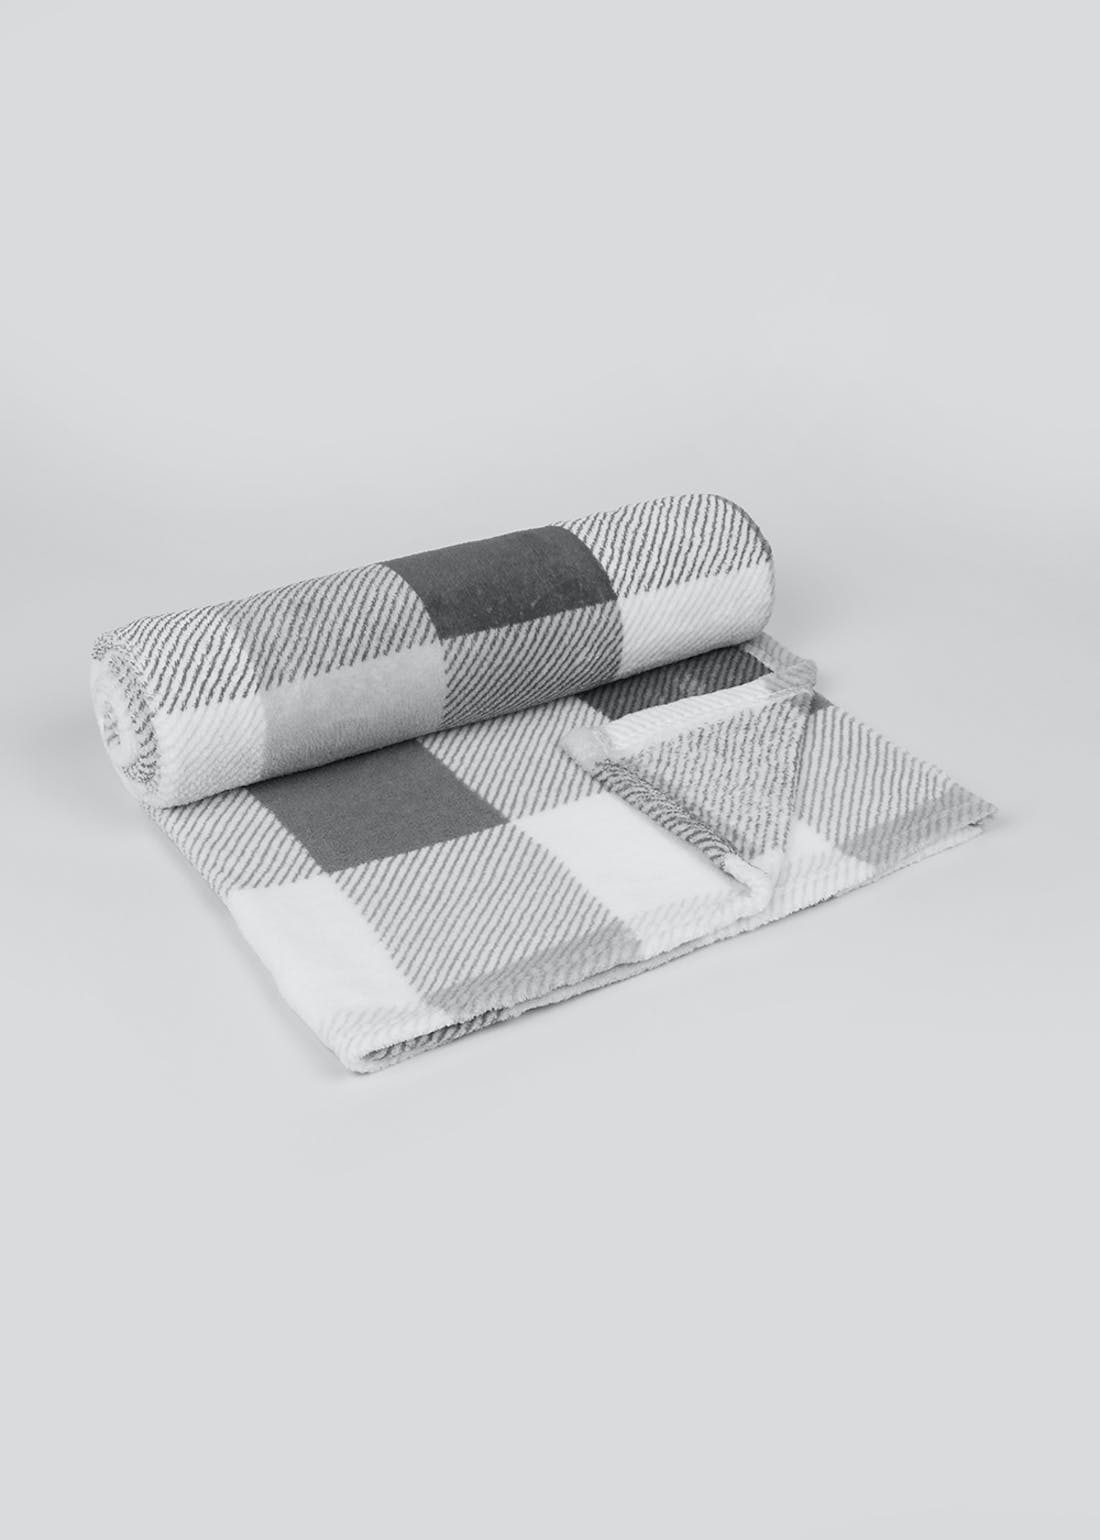 Check Fleece Throw Blanket (150cm x 130cm)